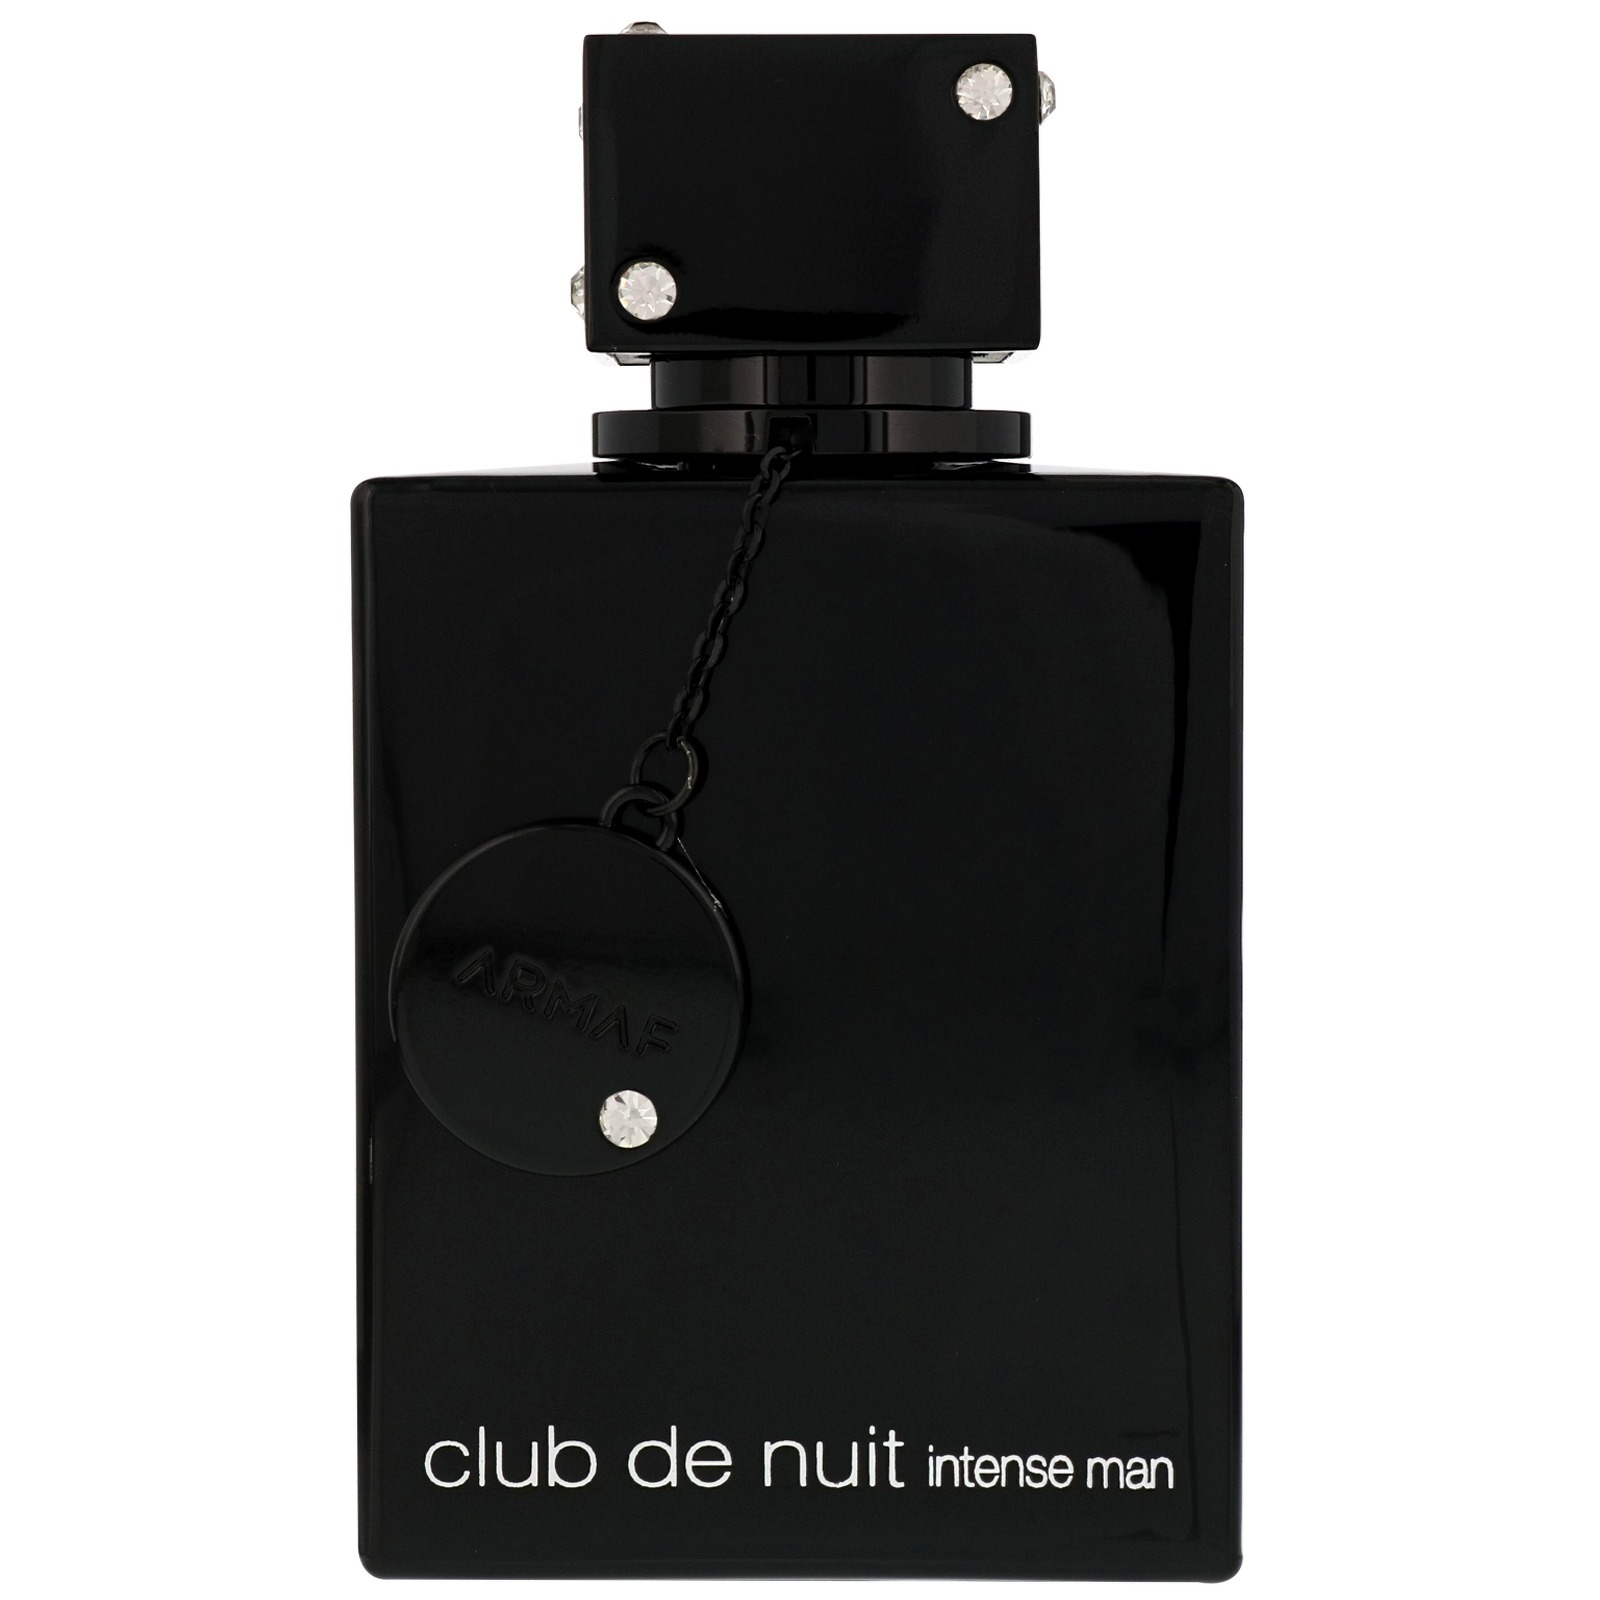 Armaf Club De Nuit Intense Man 欧德厕所喷雾 105ml